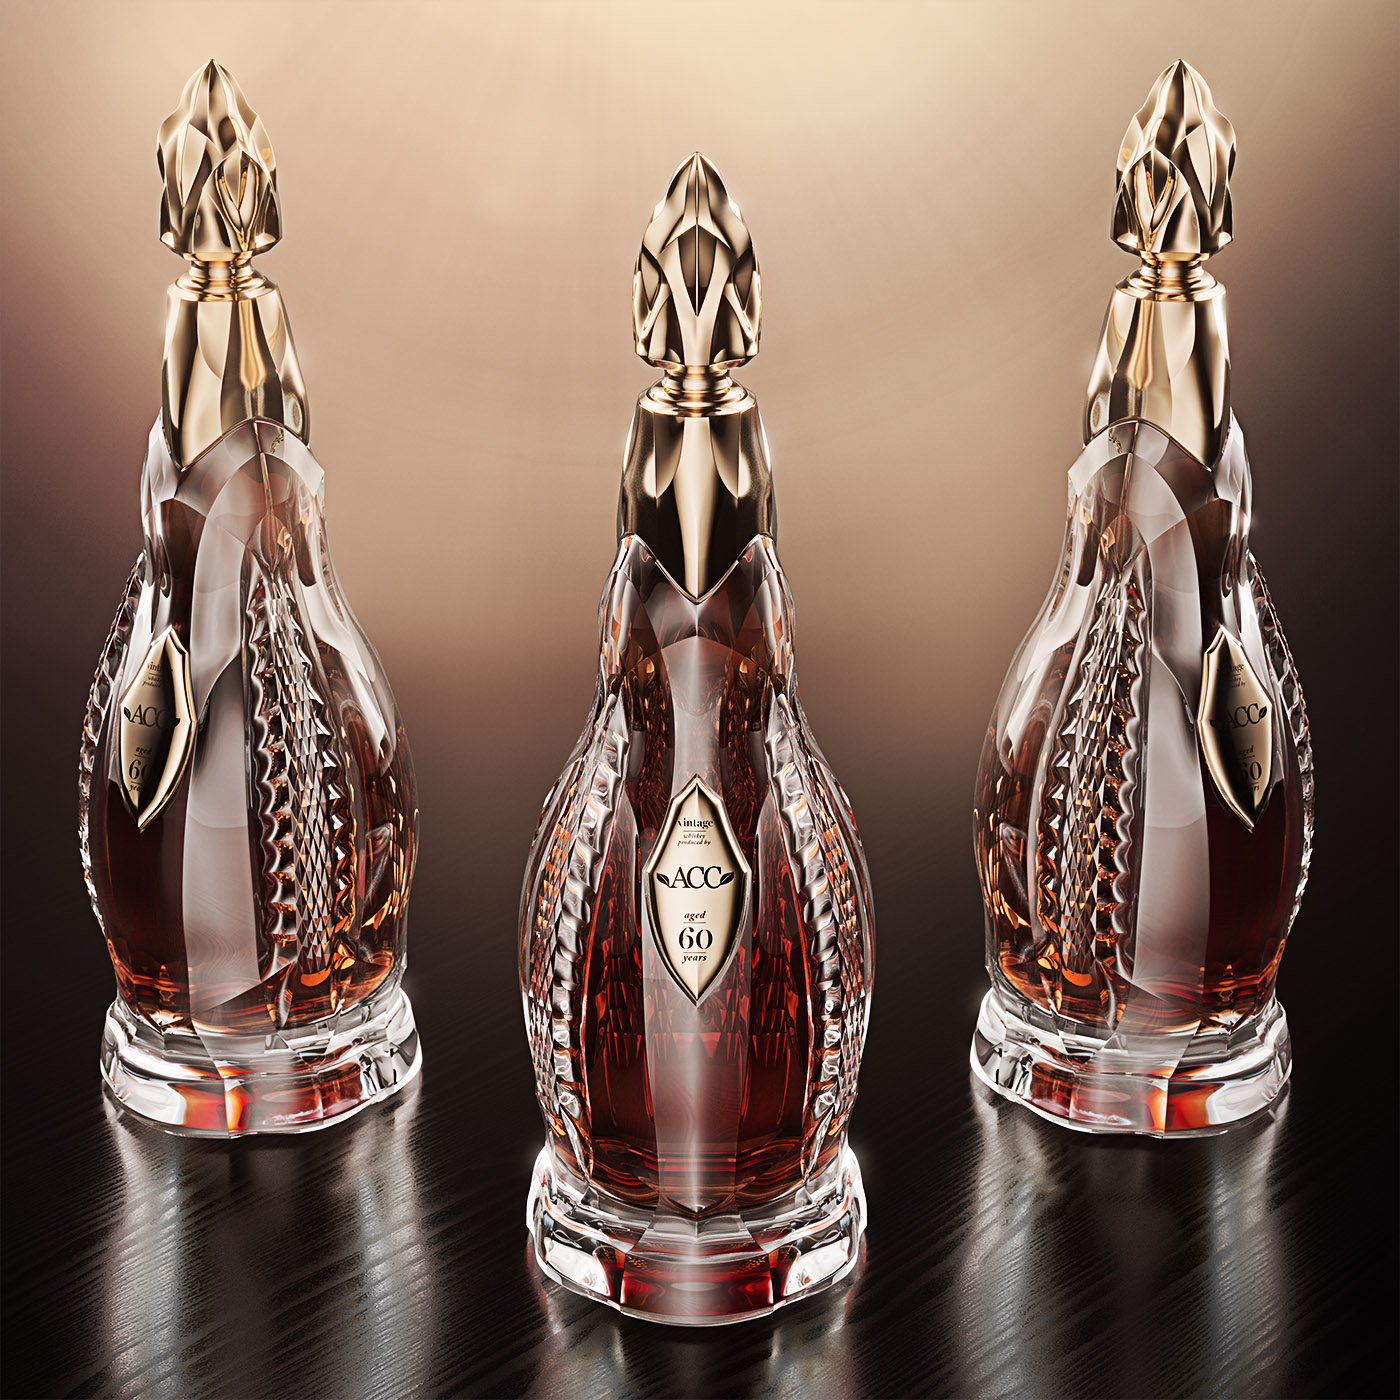 Luxury whisky bottle 3.jpg